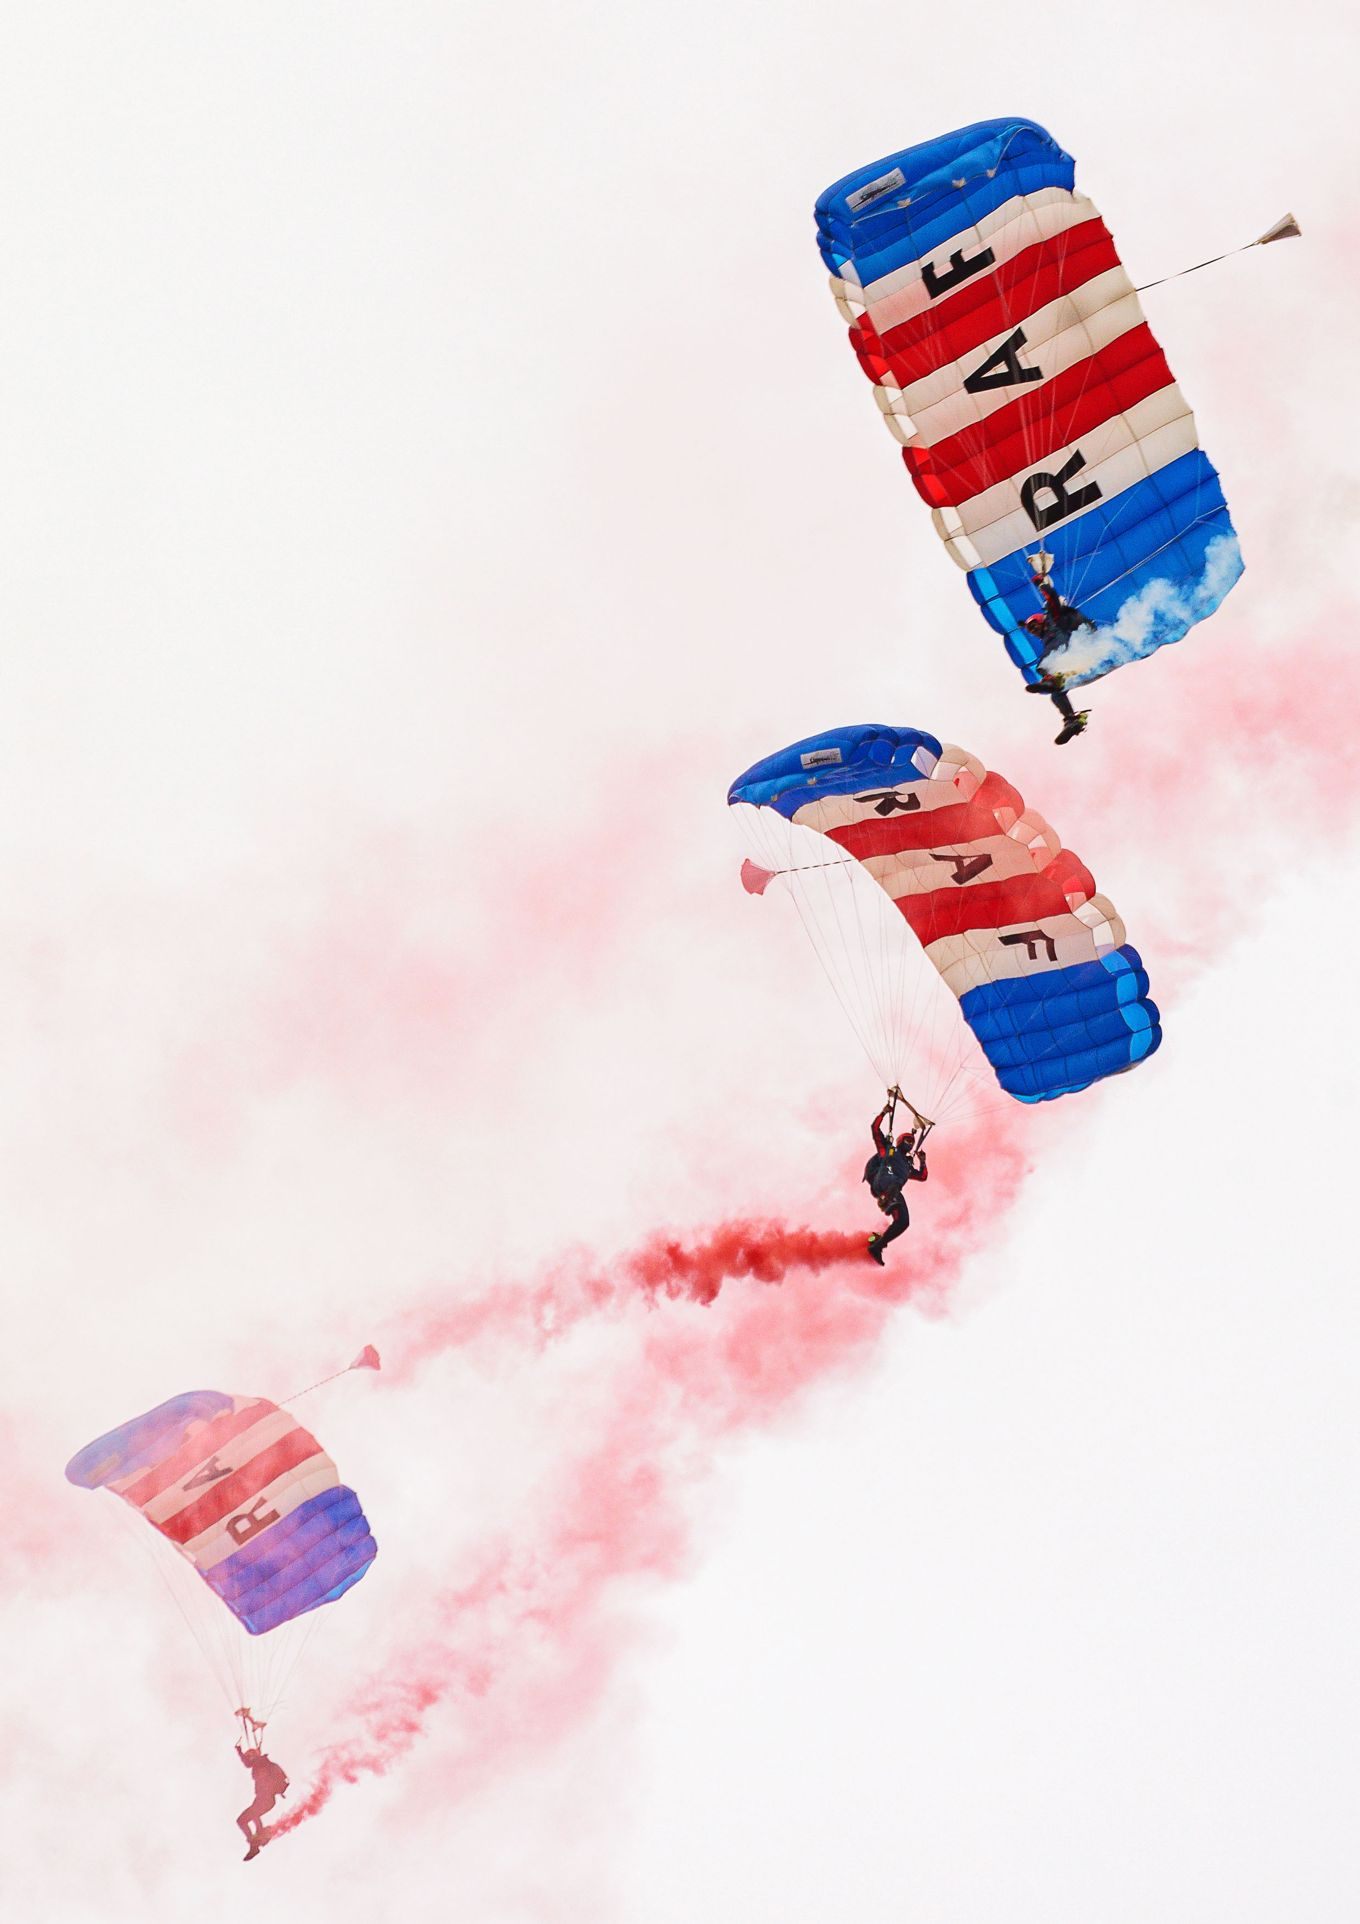 The RAF Falcons conducting their parachute training at RAF Brize Norton.